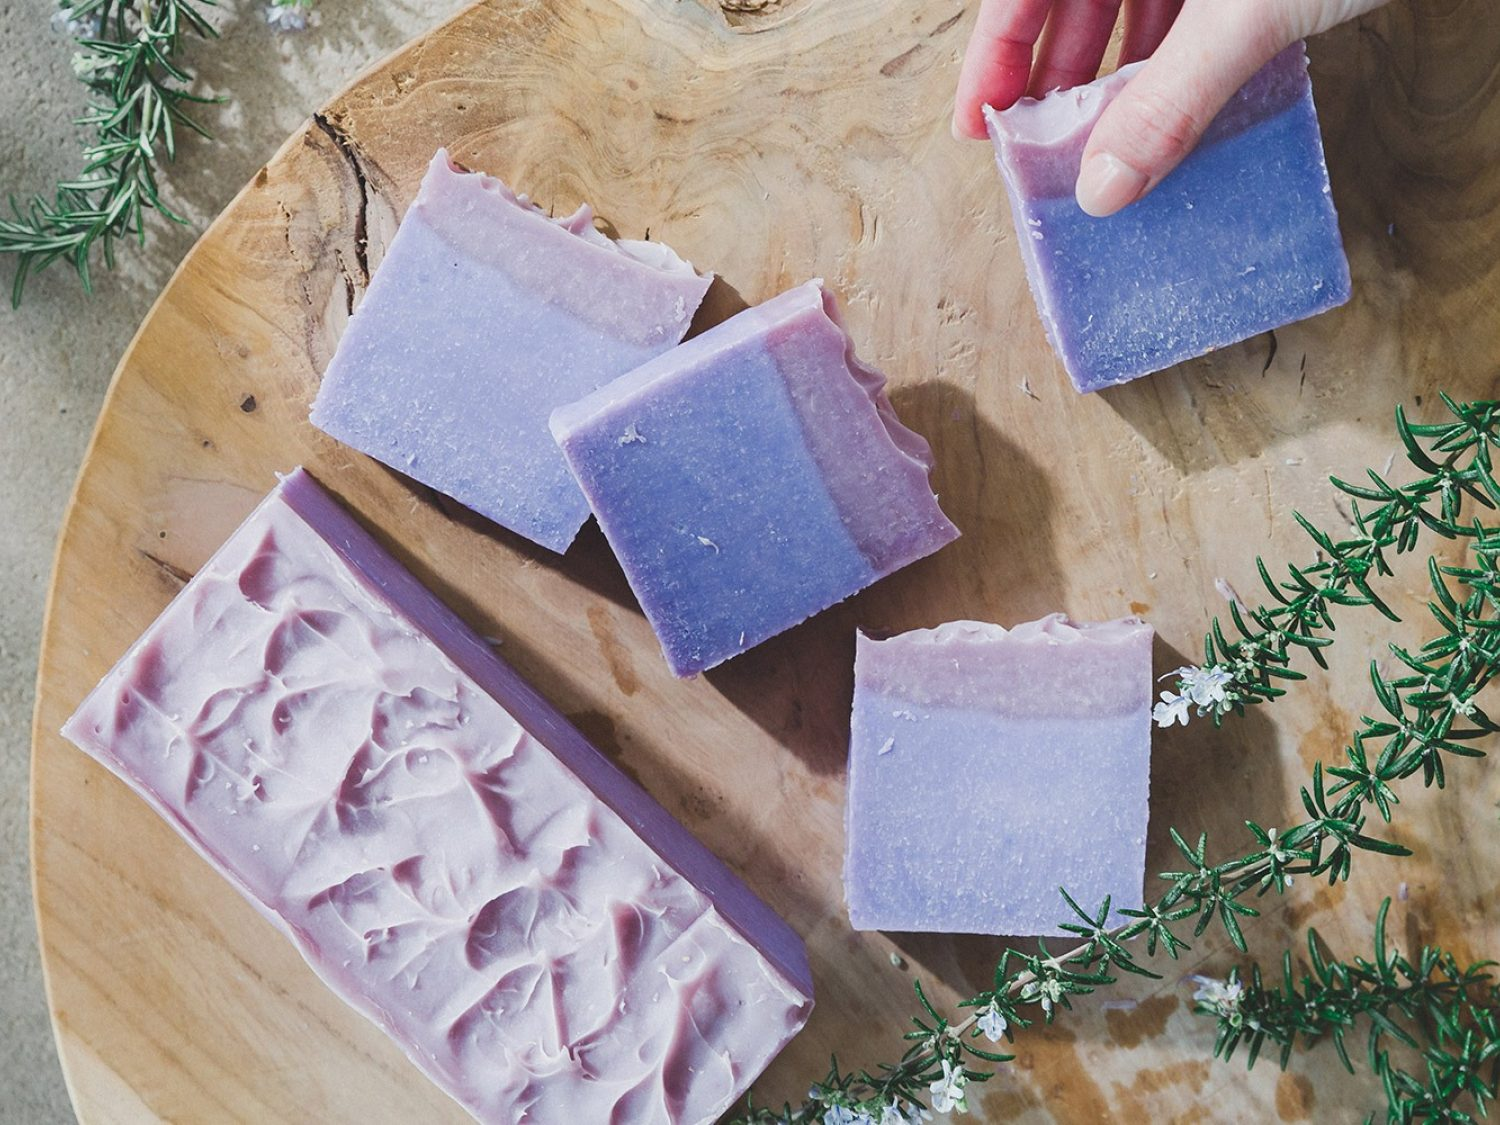 Purple soap bars on a wooden board with sprigs of rosemary.